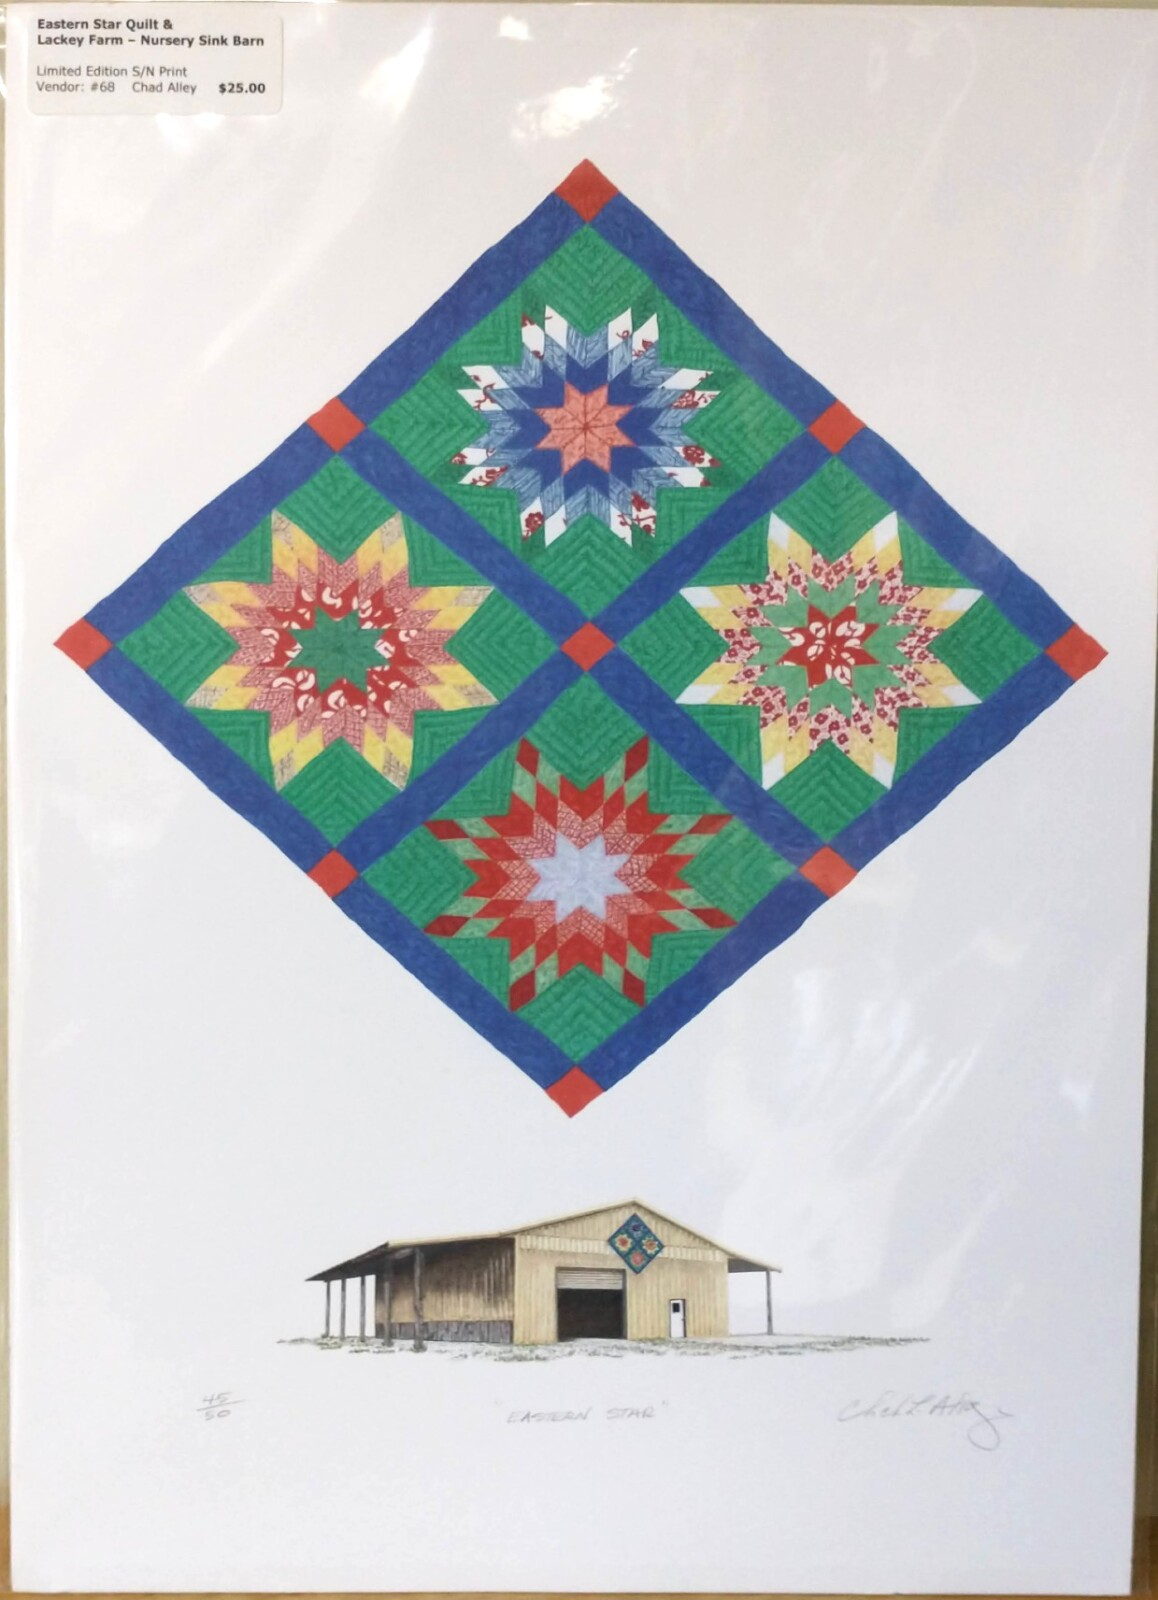 Eastern Star Quilt & Lackey Farm- Nursery Sink Barn Print